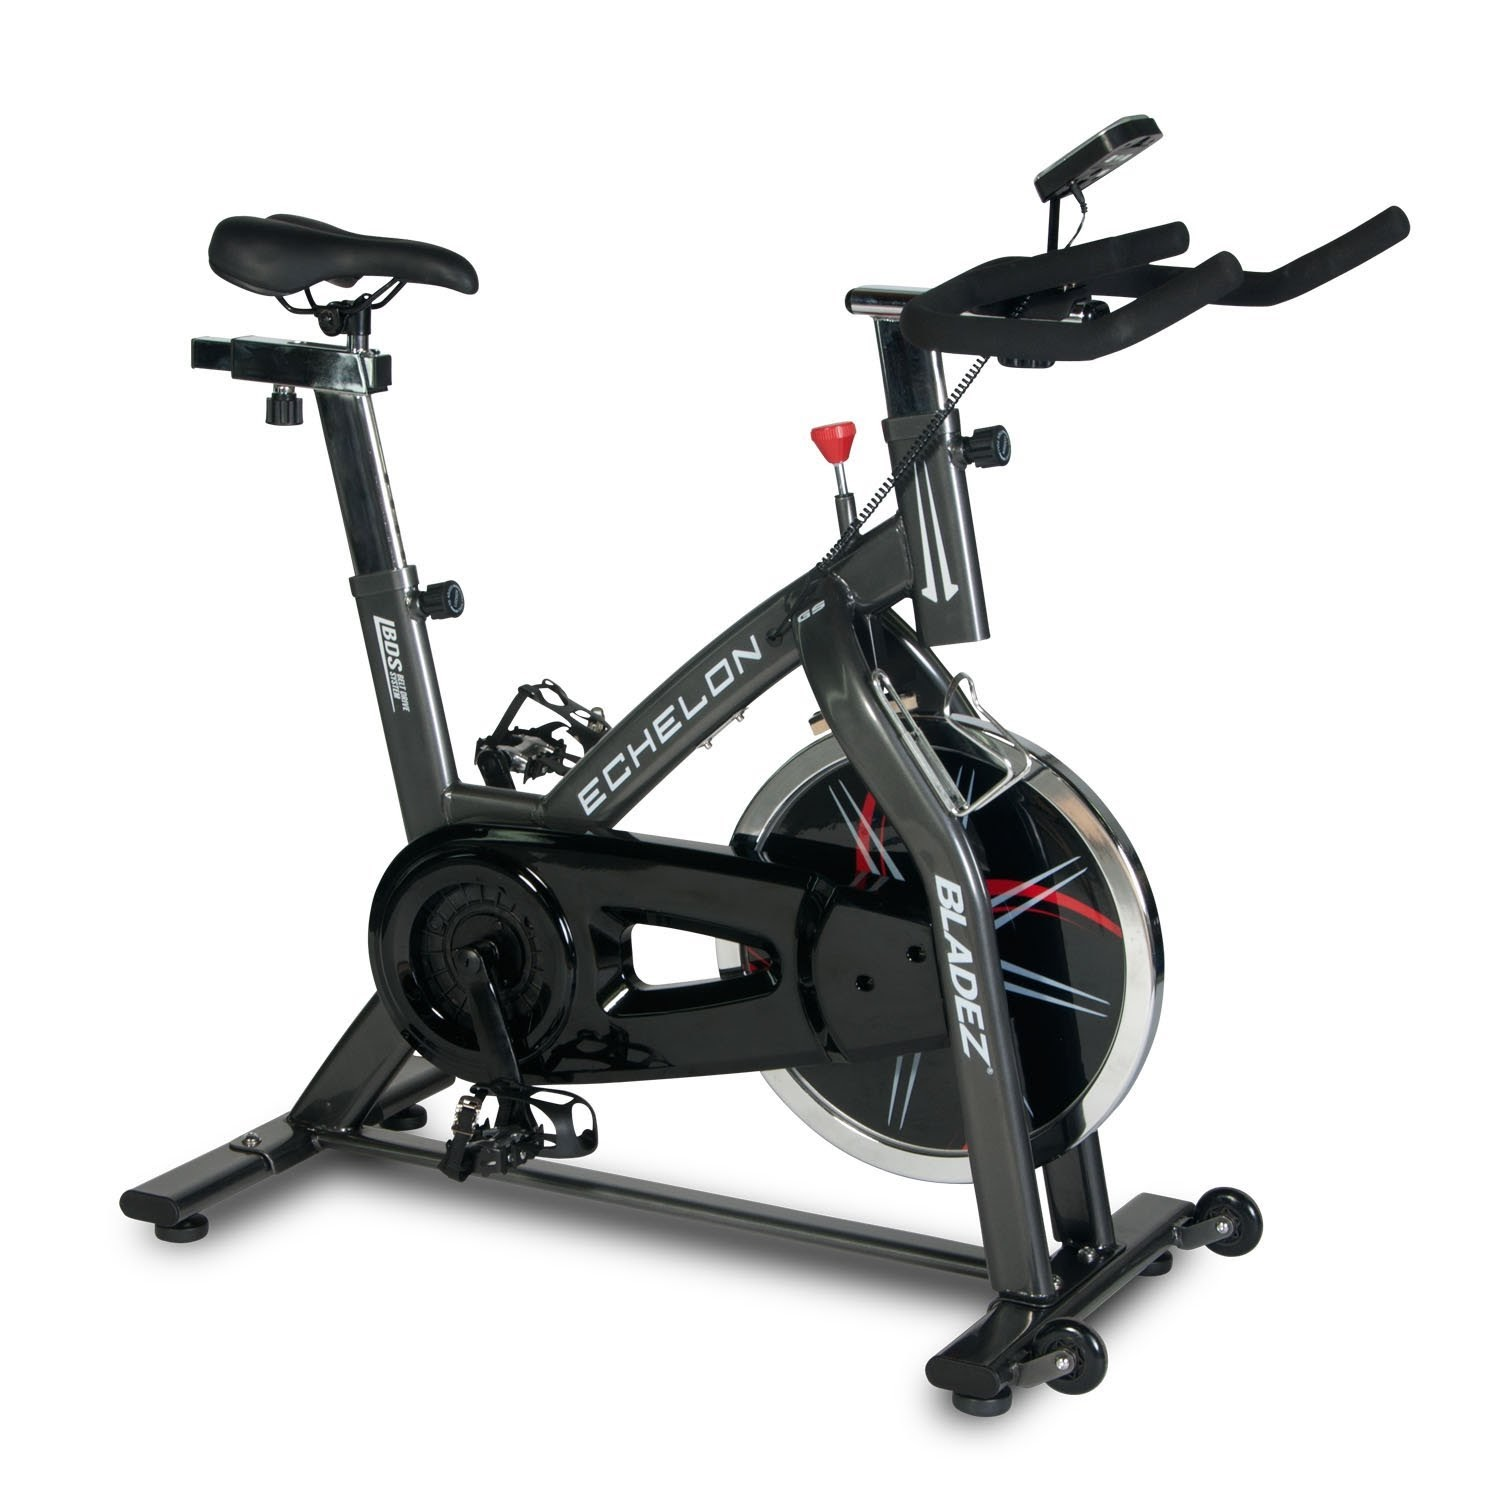 Gold S Gym Drive Belt Replacement: Exercise Bike Zone: Bladez Fitness Echelon GS Indoor Cycle